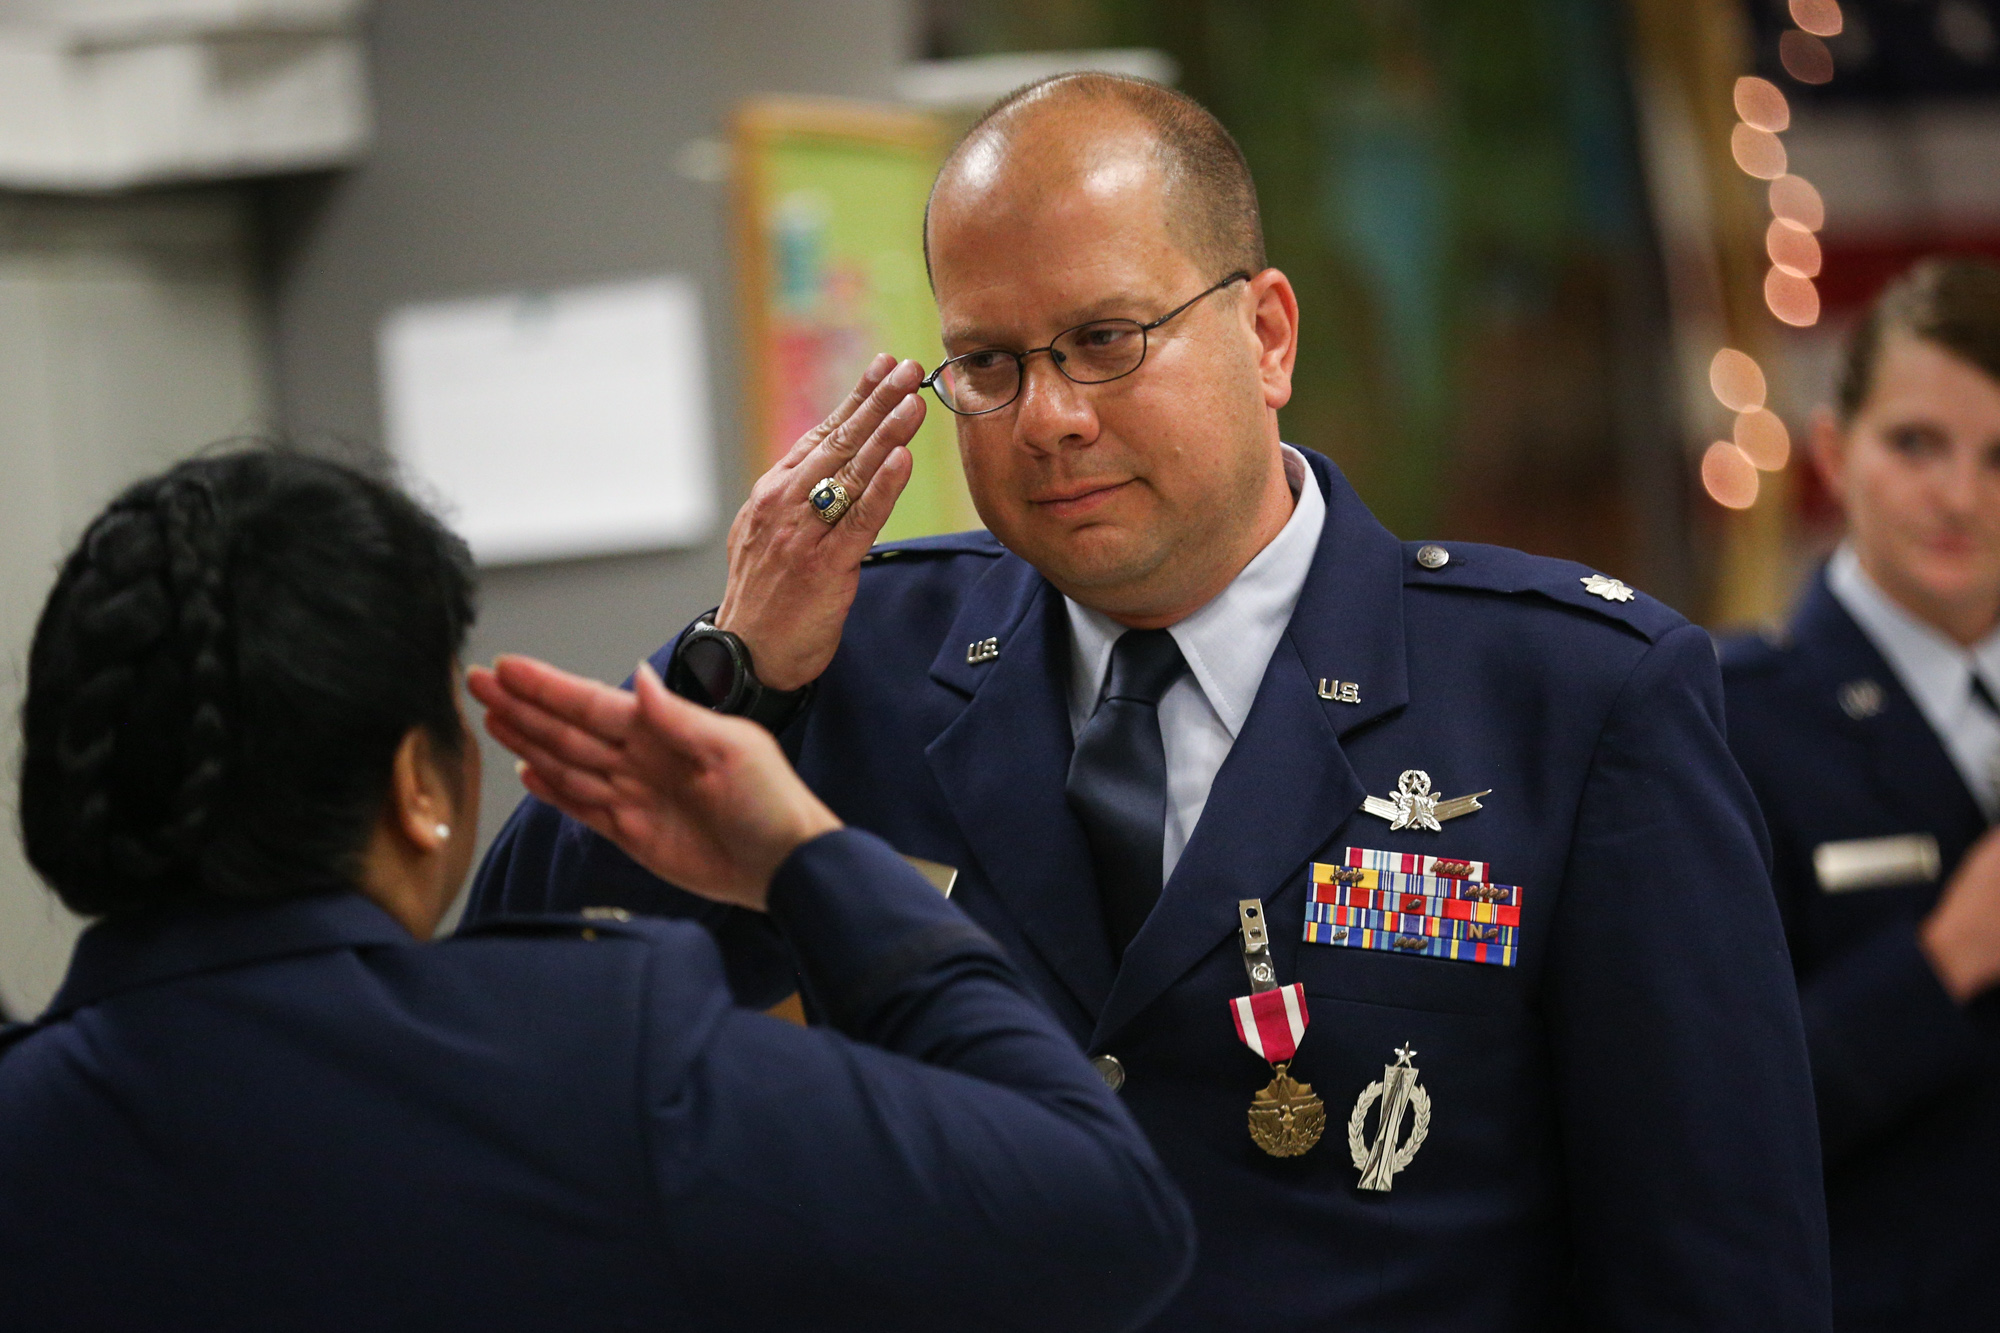 Former Deputy Chief of Space Operations retires in Conroe ...